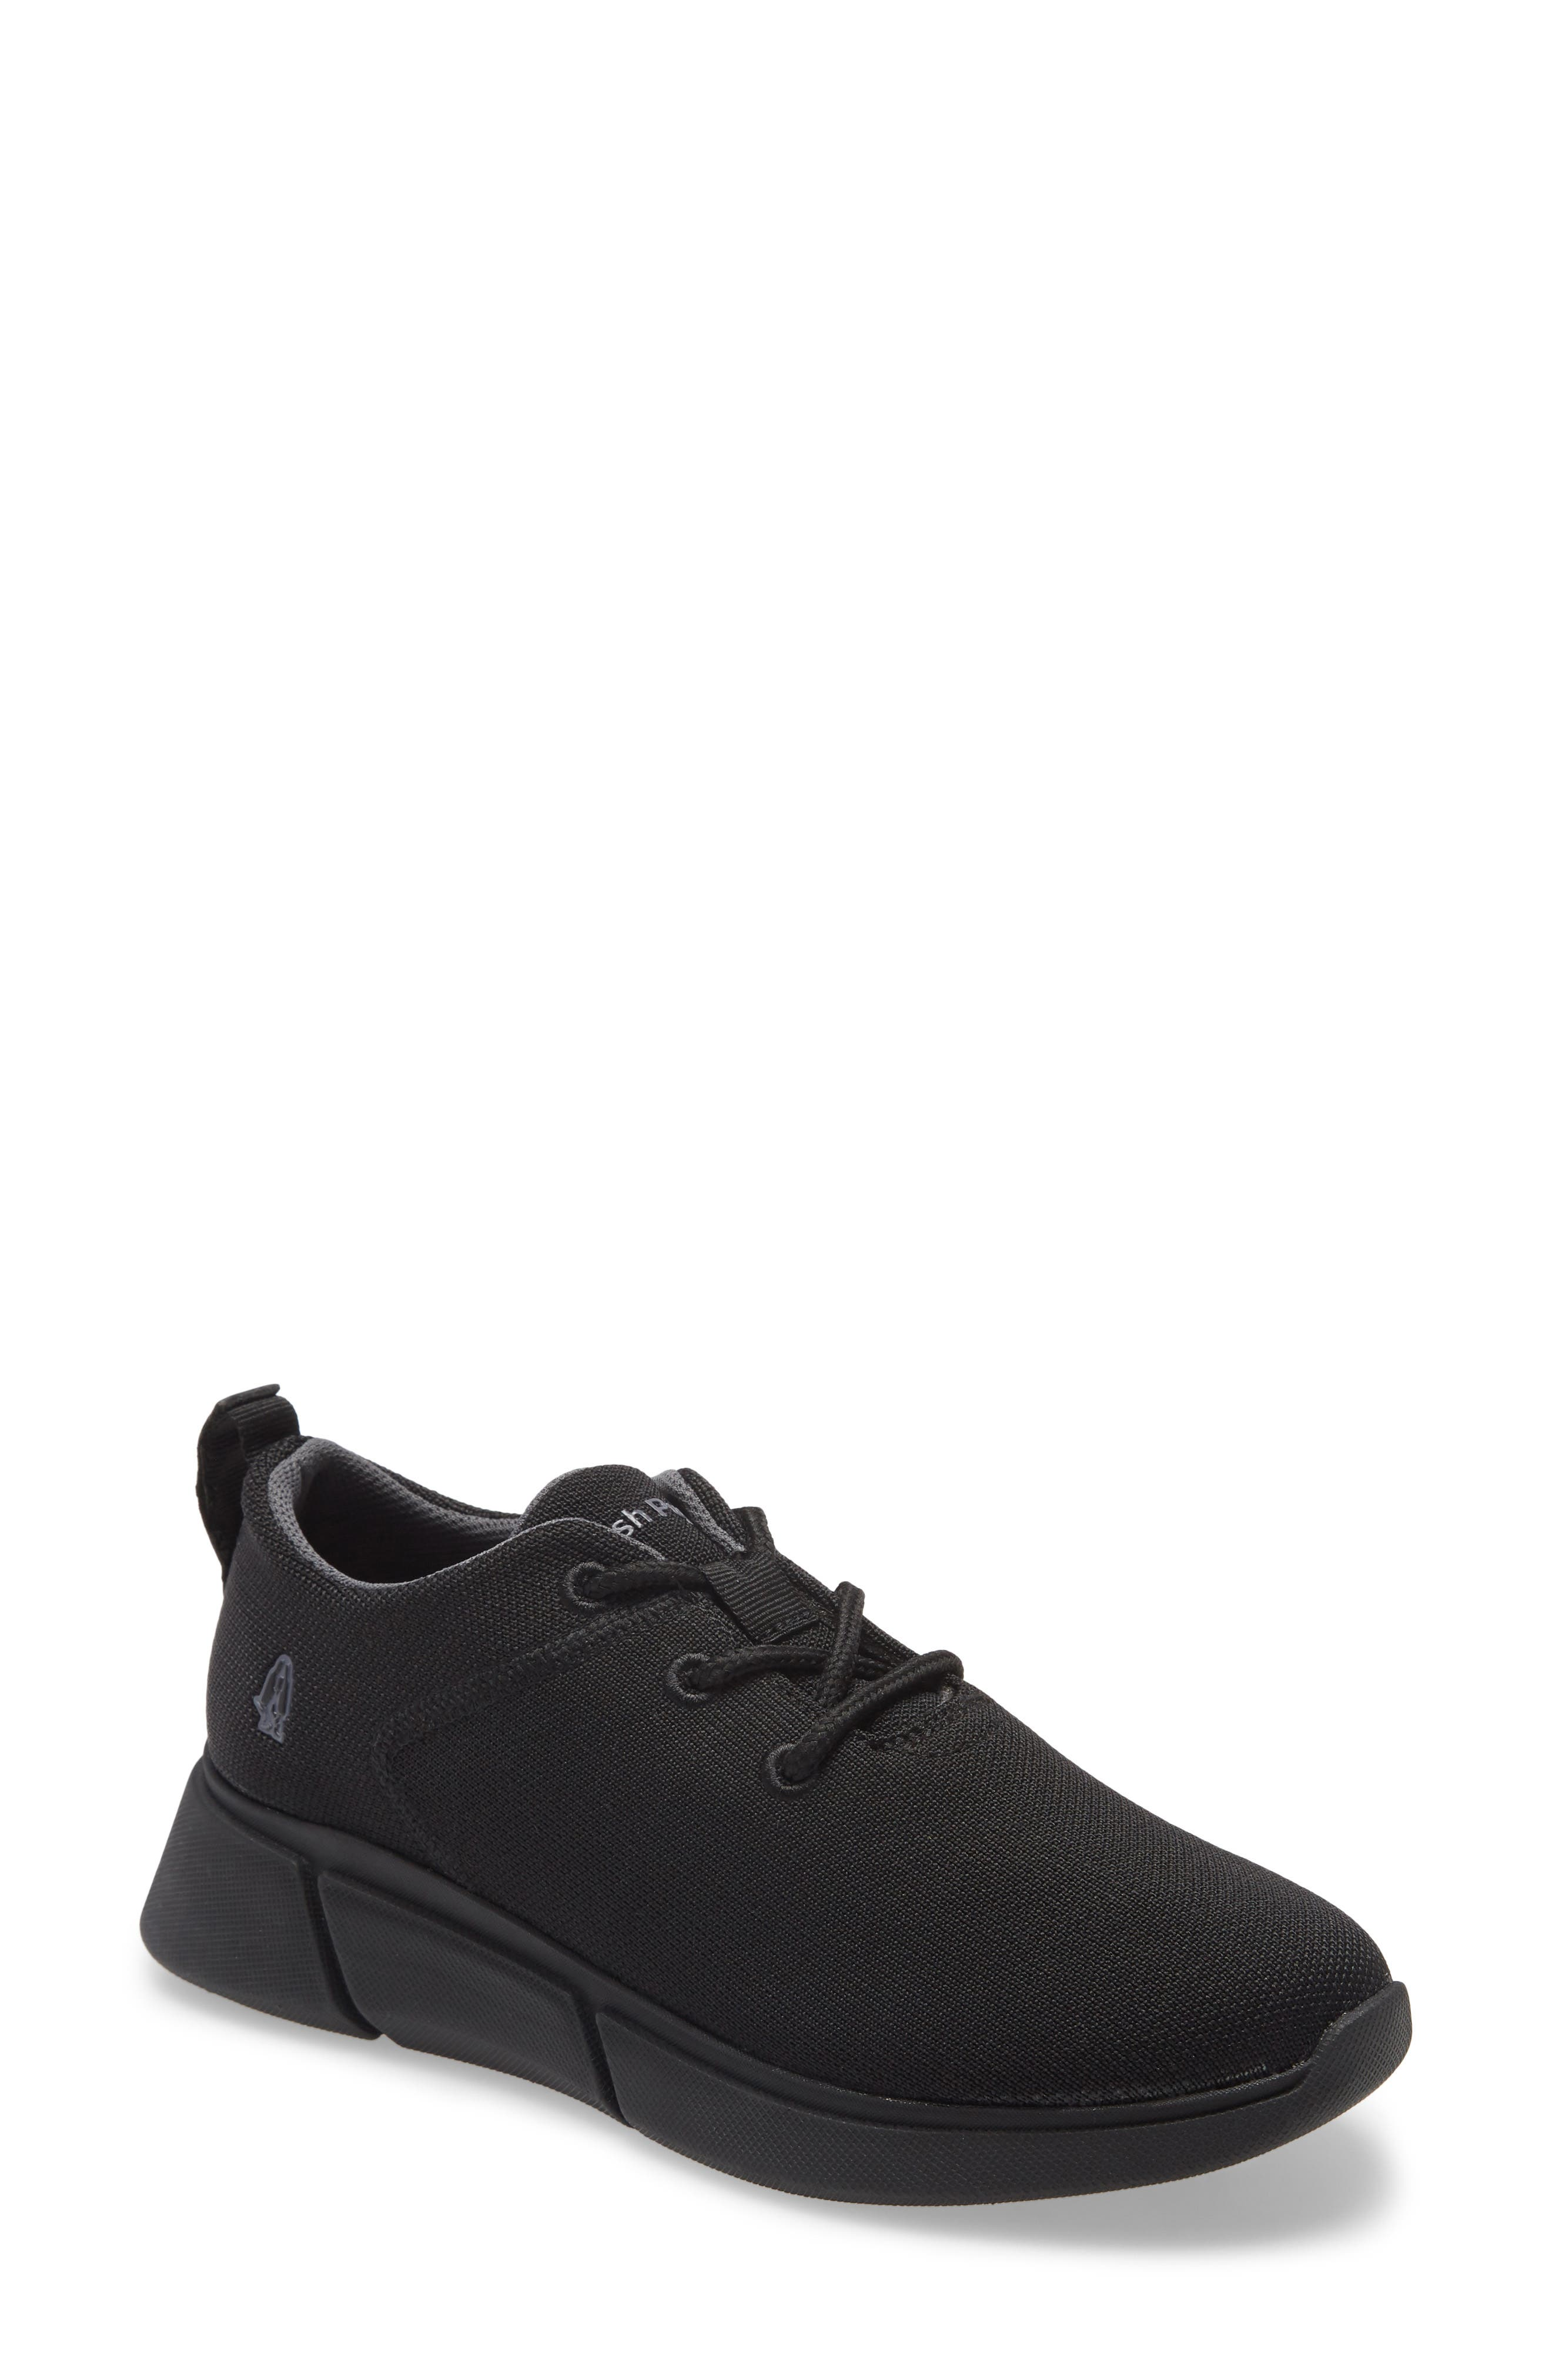 Image of Hush Puppies Makenna Lace-Up Sneaker